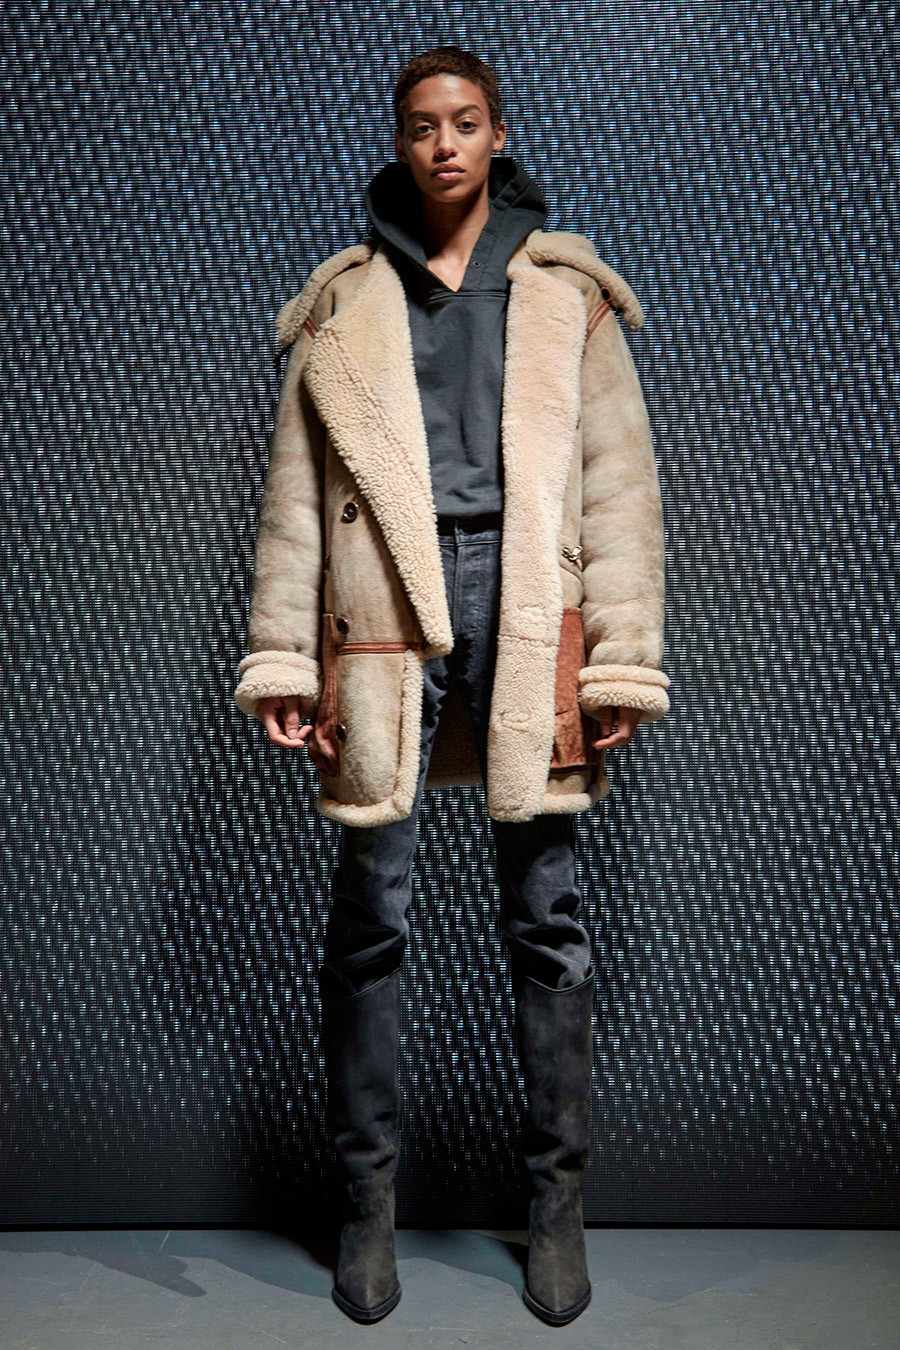 noticia yeezy season 5 adidas kanye west tendencias lifestyle urban umomag